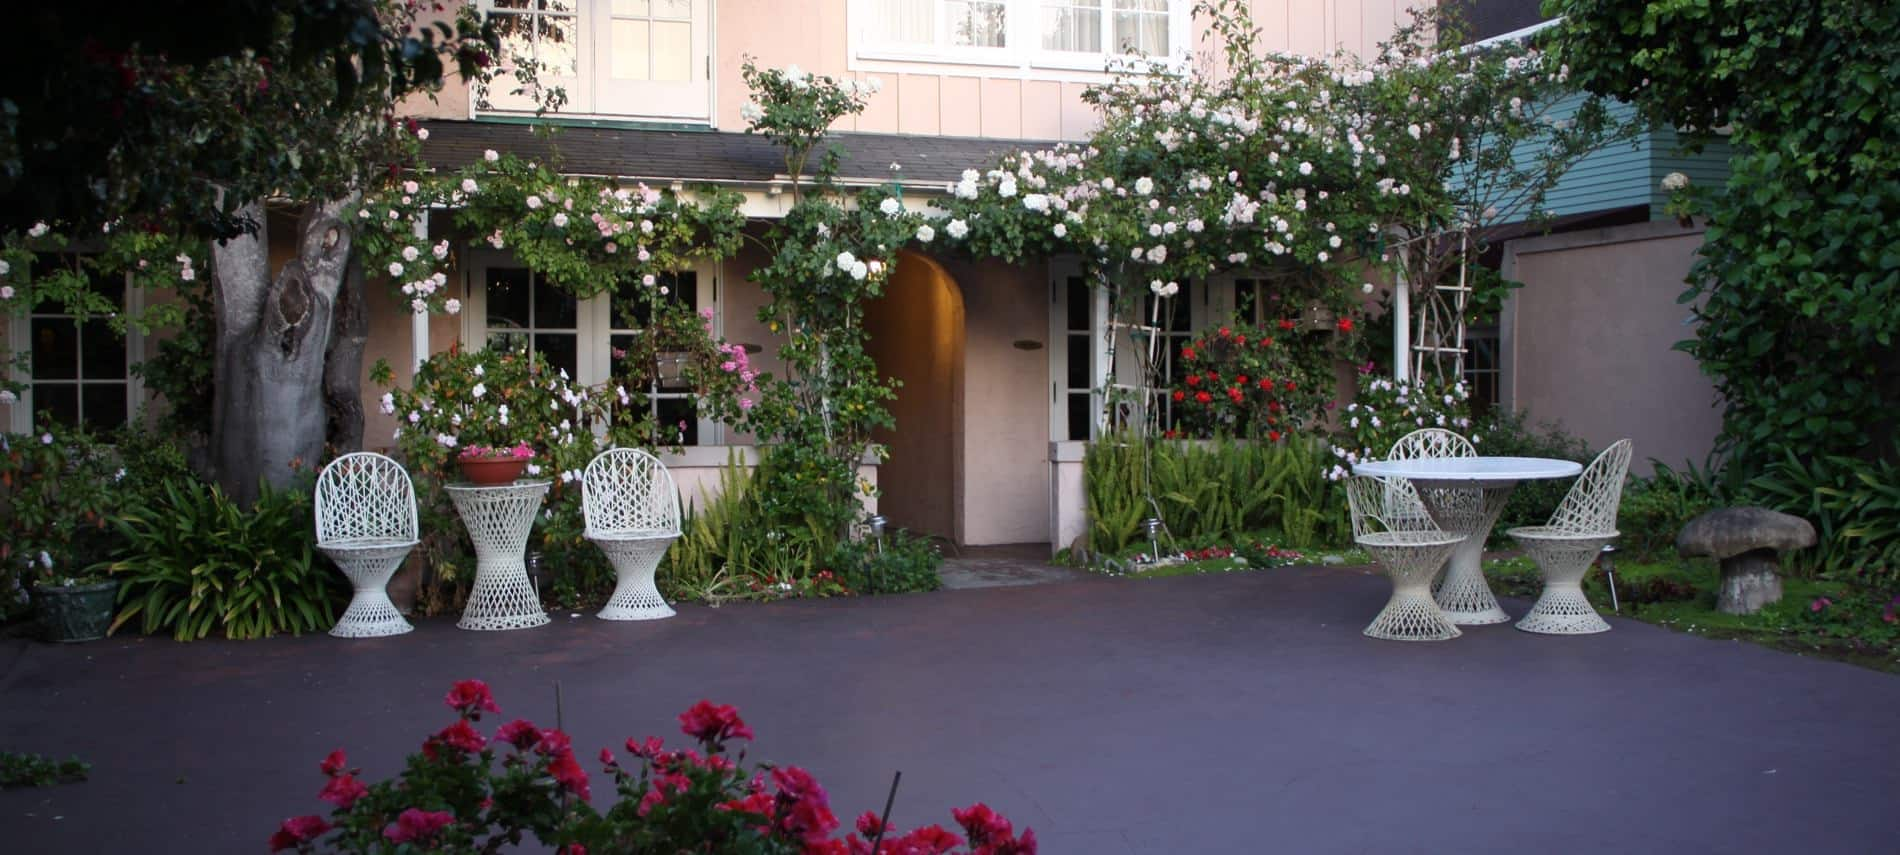 Courtyard surrounded by light pink building, flowering and leafy vines, plants and flowers, and white tables and chairs